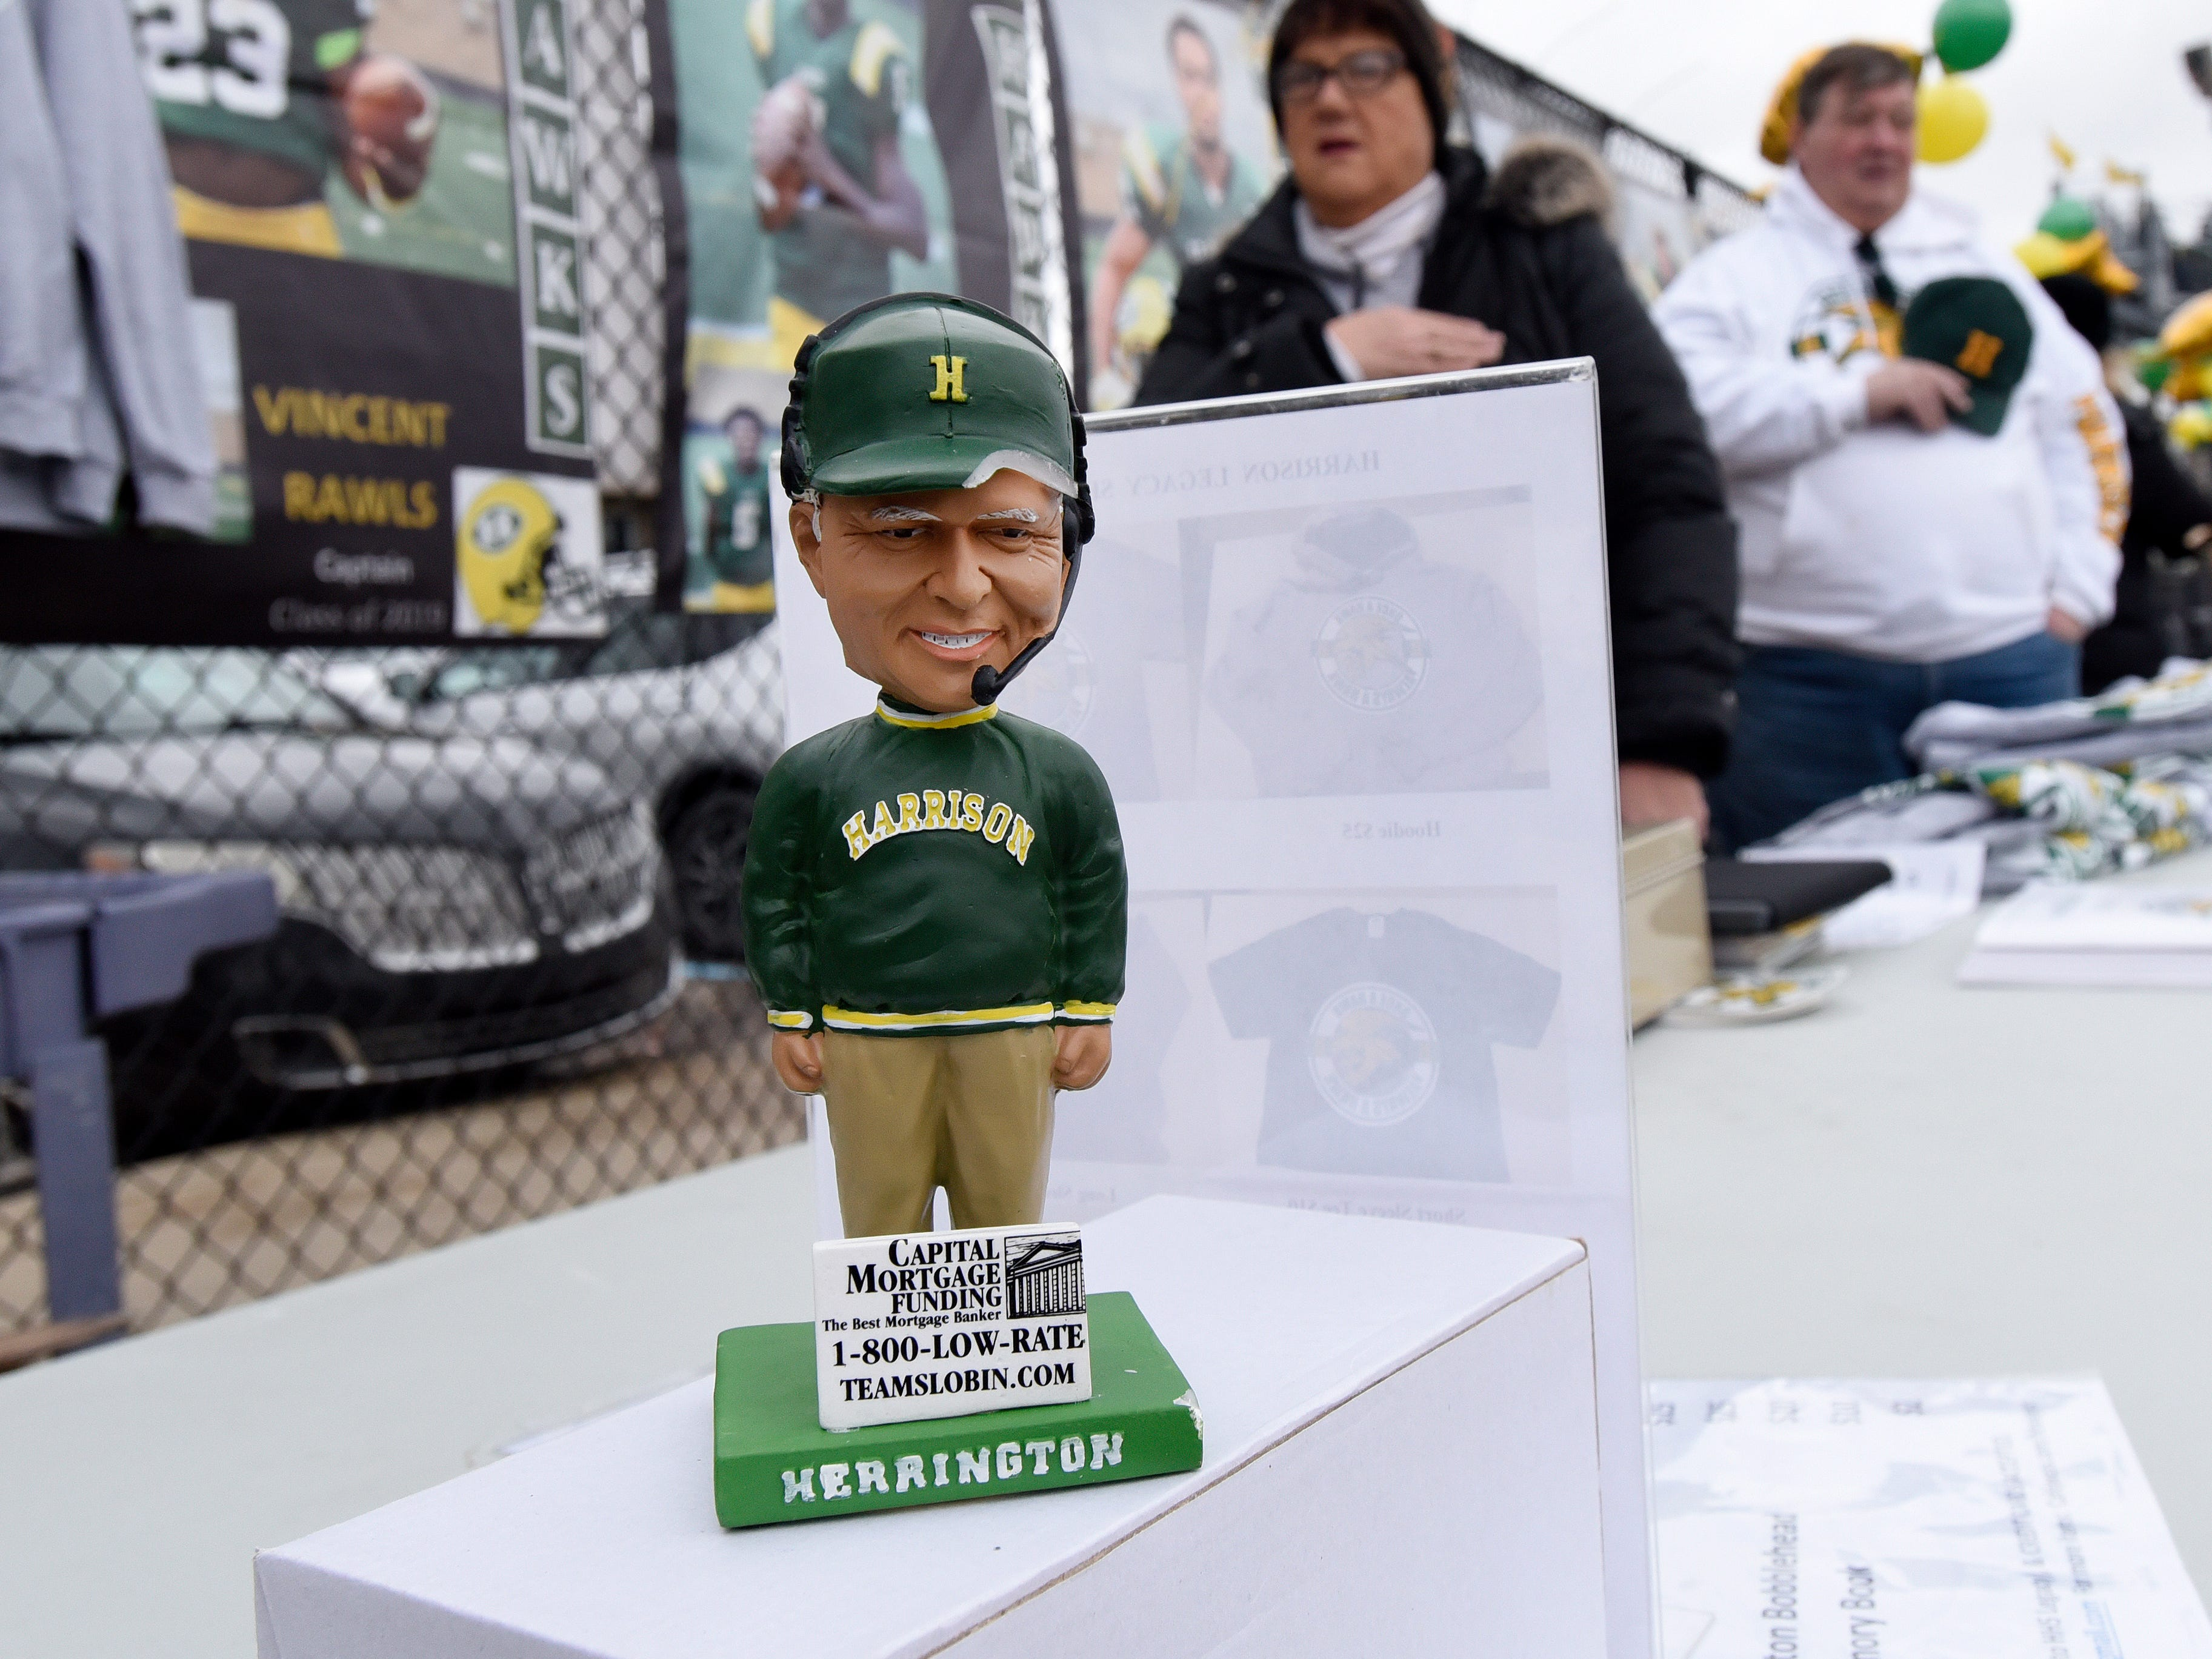 A bobblehead of Farmington Hills Harrison football head coach John Herrington was being sold along the walkway during the game against Chelsea.